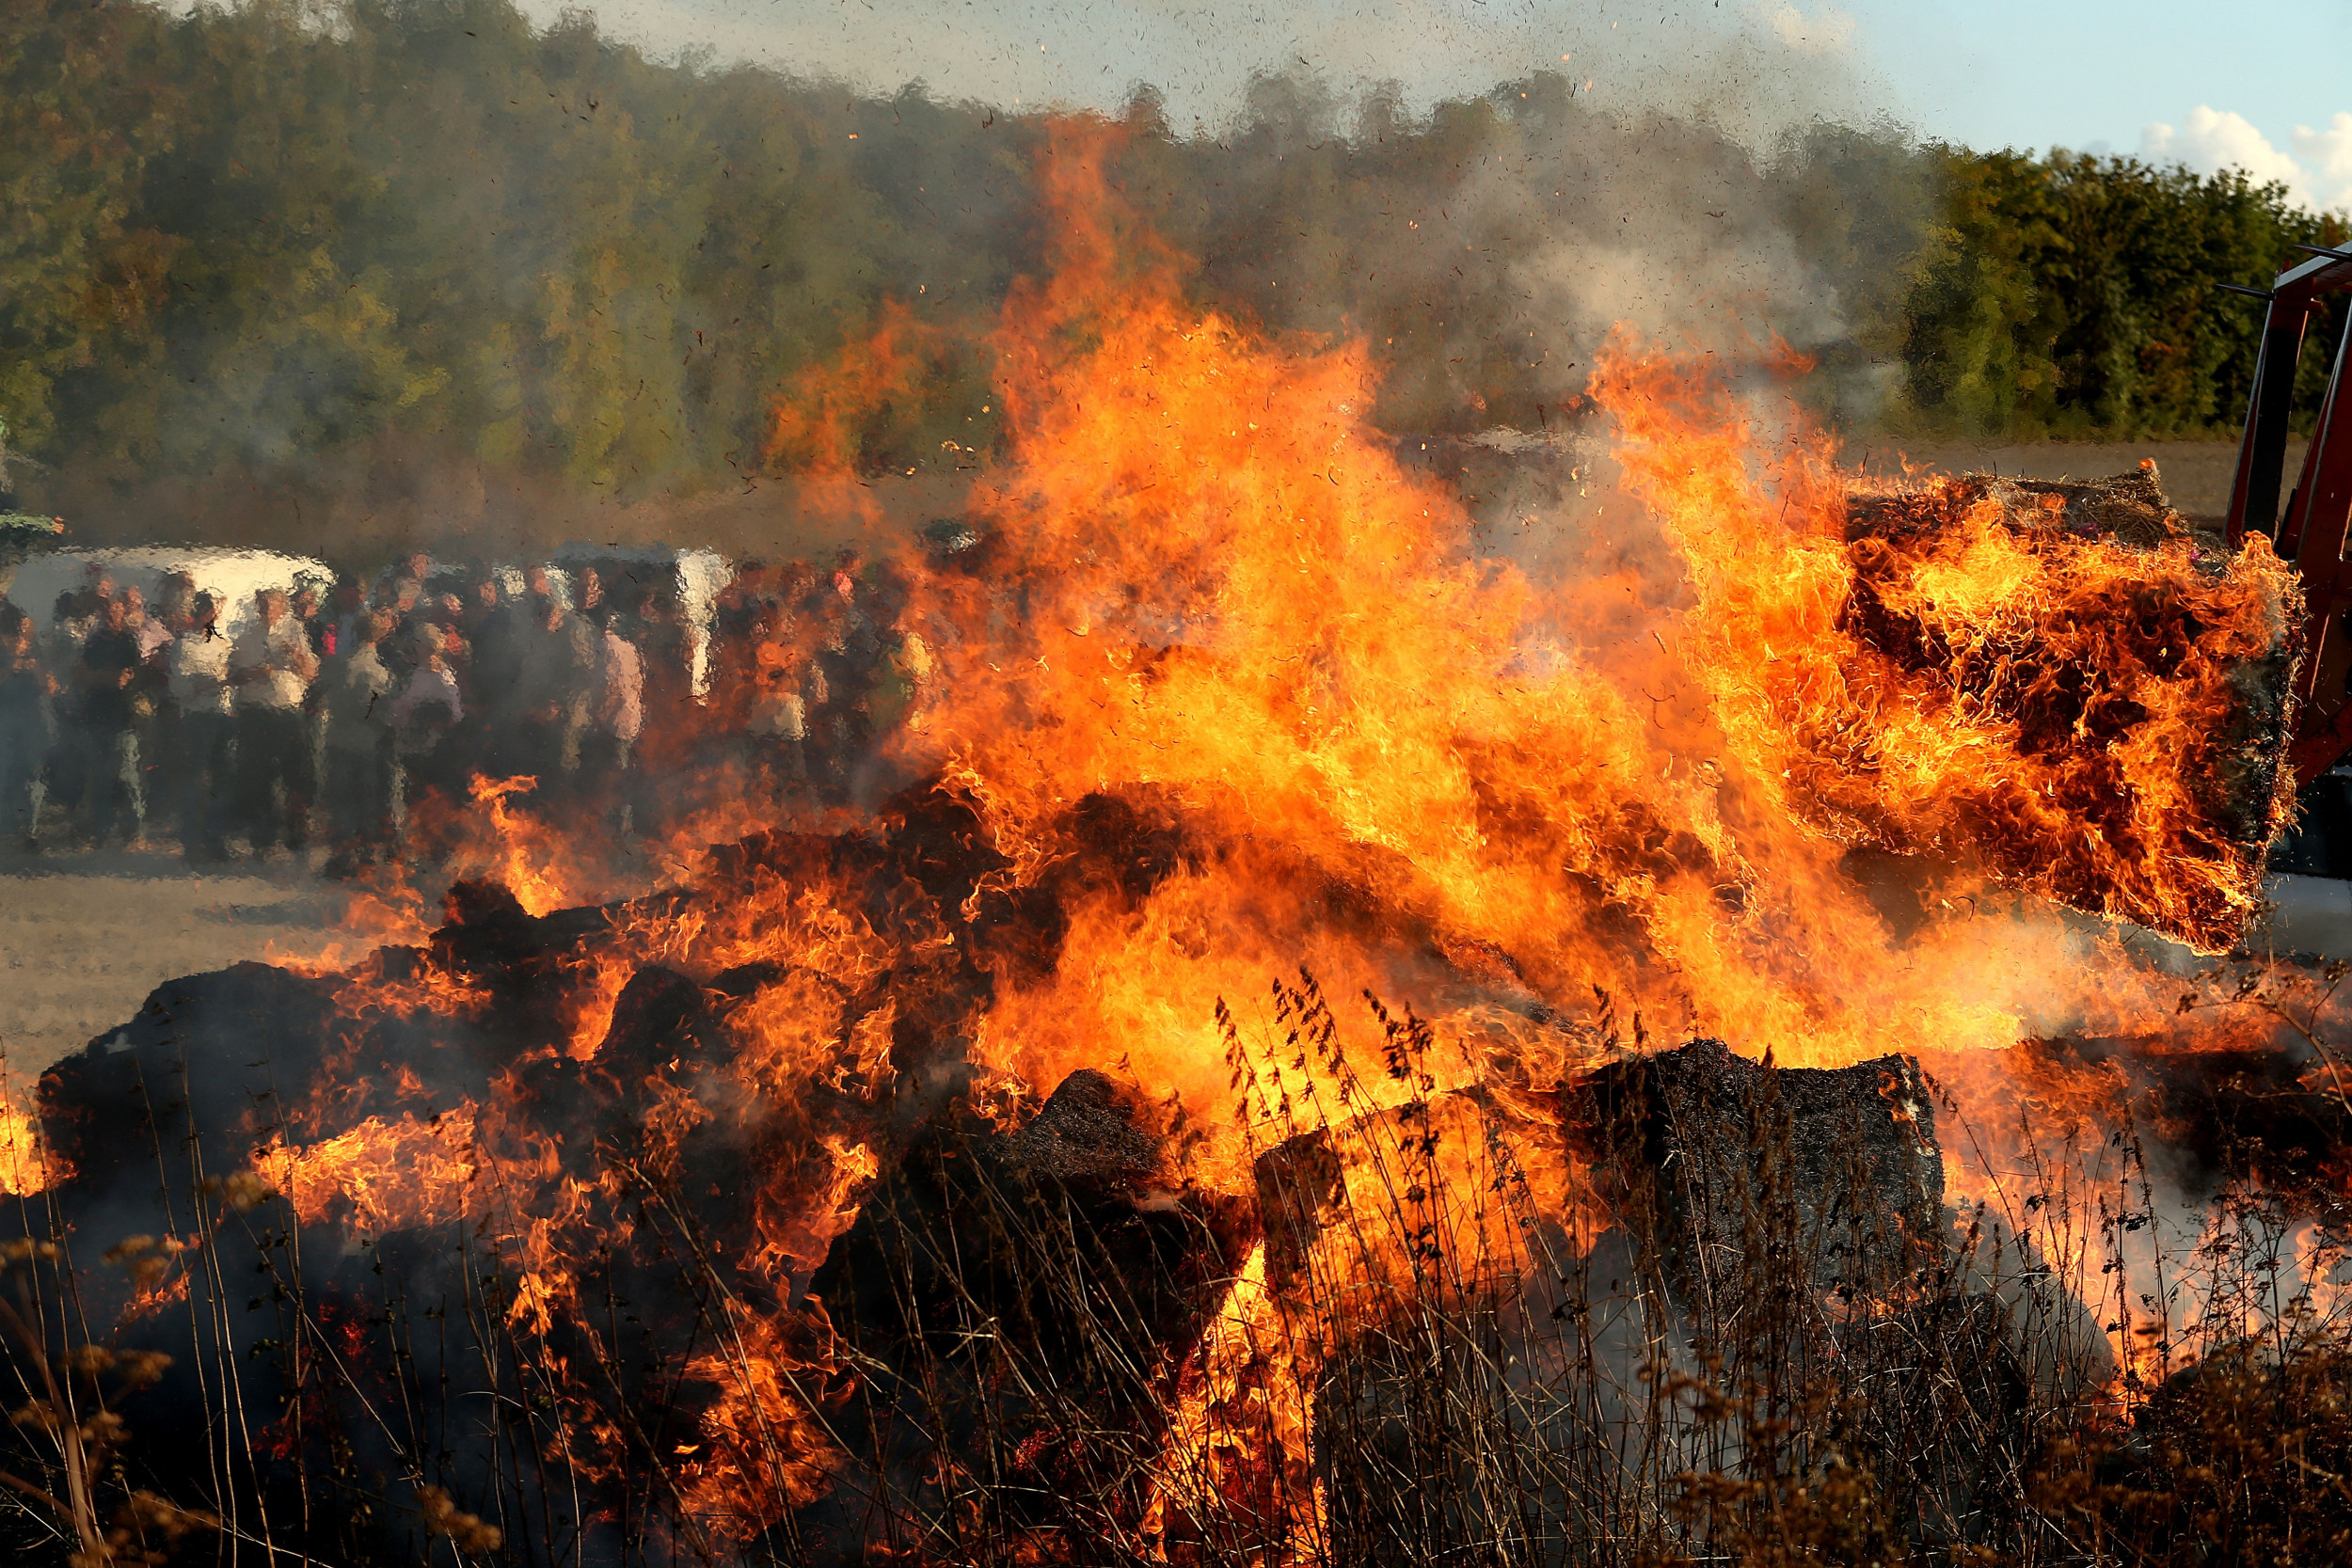 'Up in Flames': Biden-Harris Campaign Hay Bale Display Torched in Massachusetts thumbnail